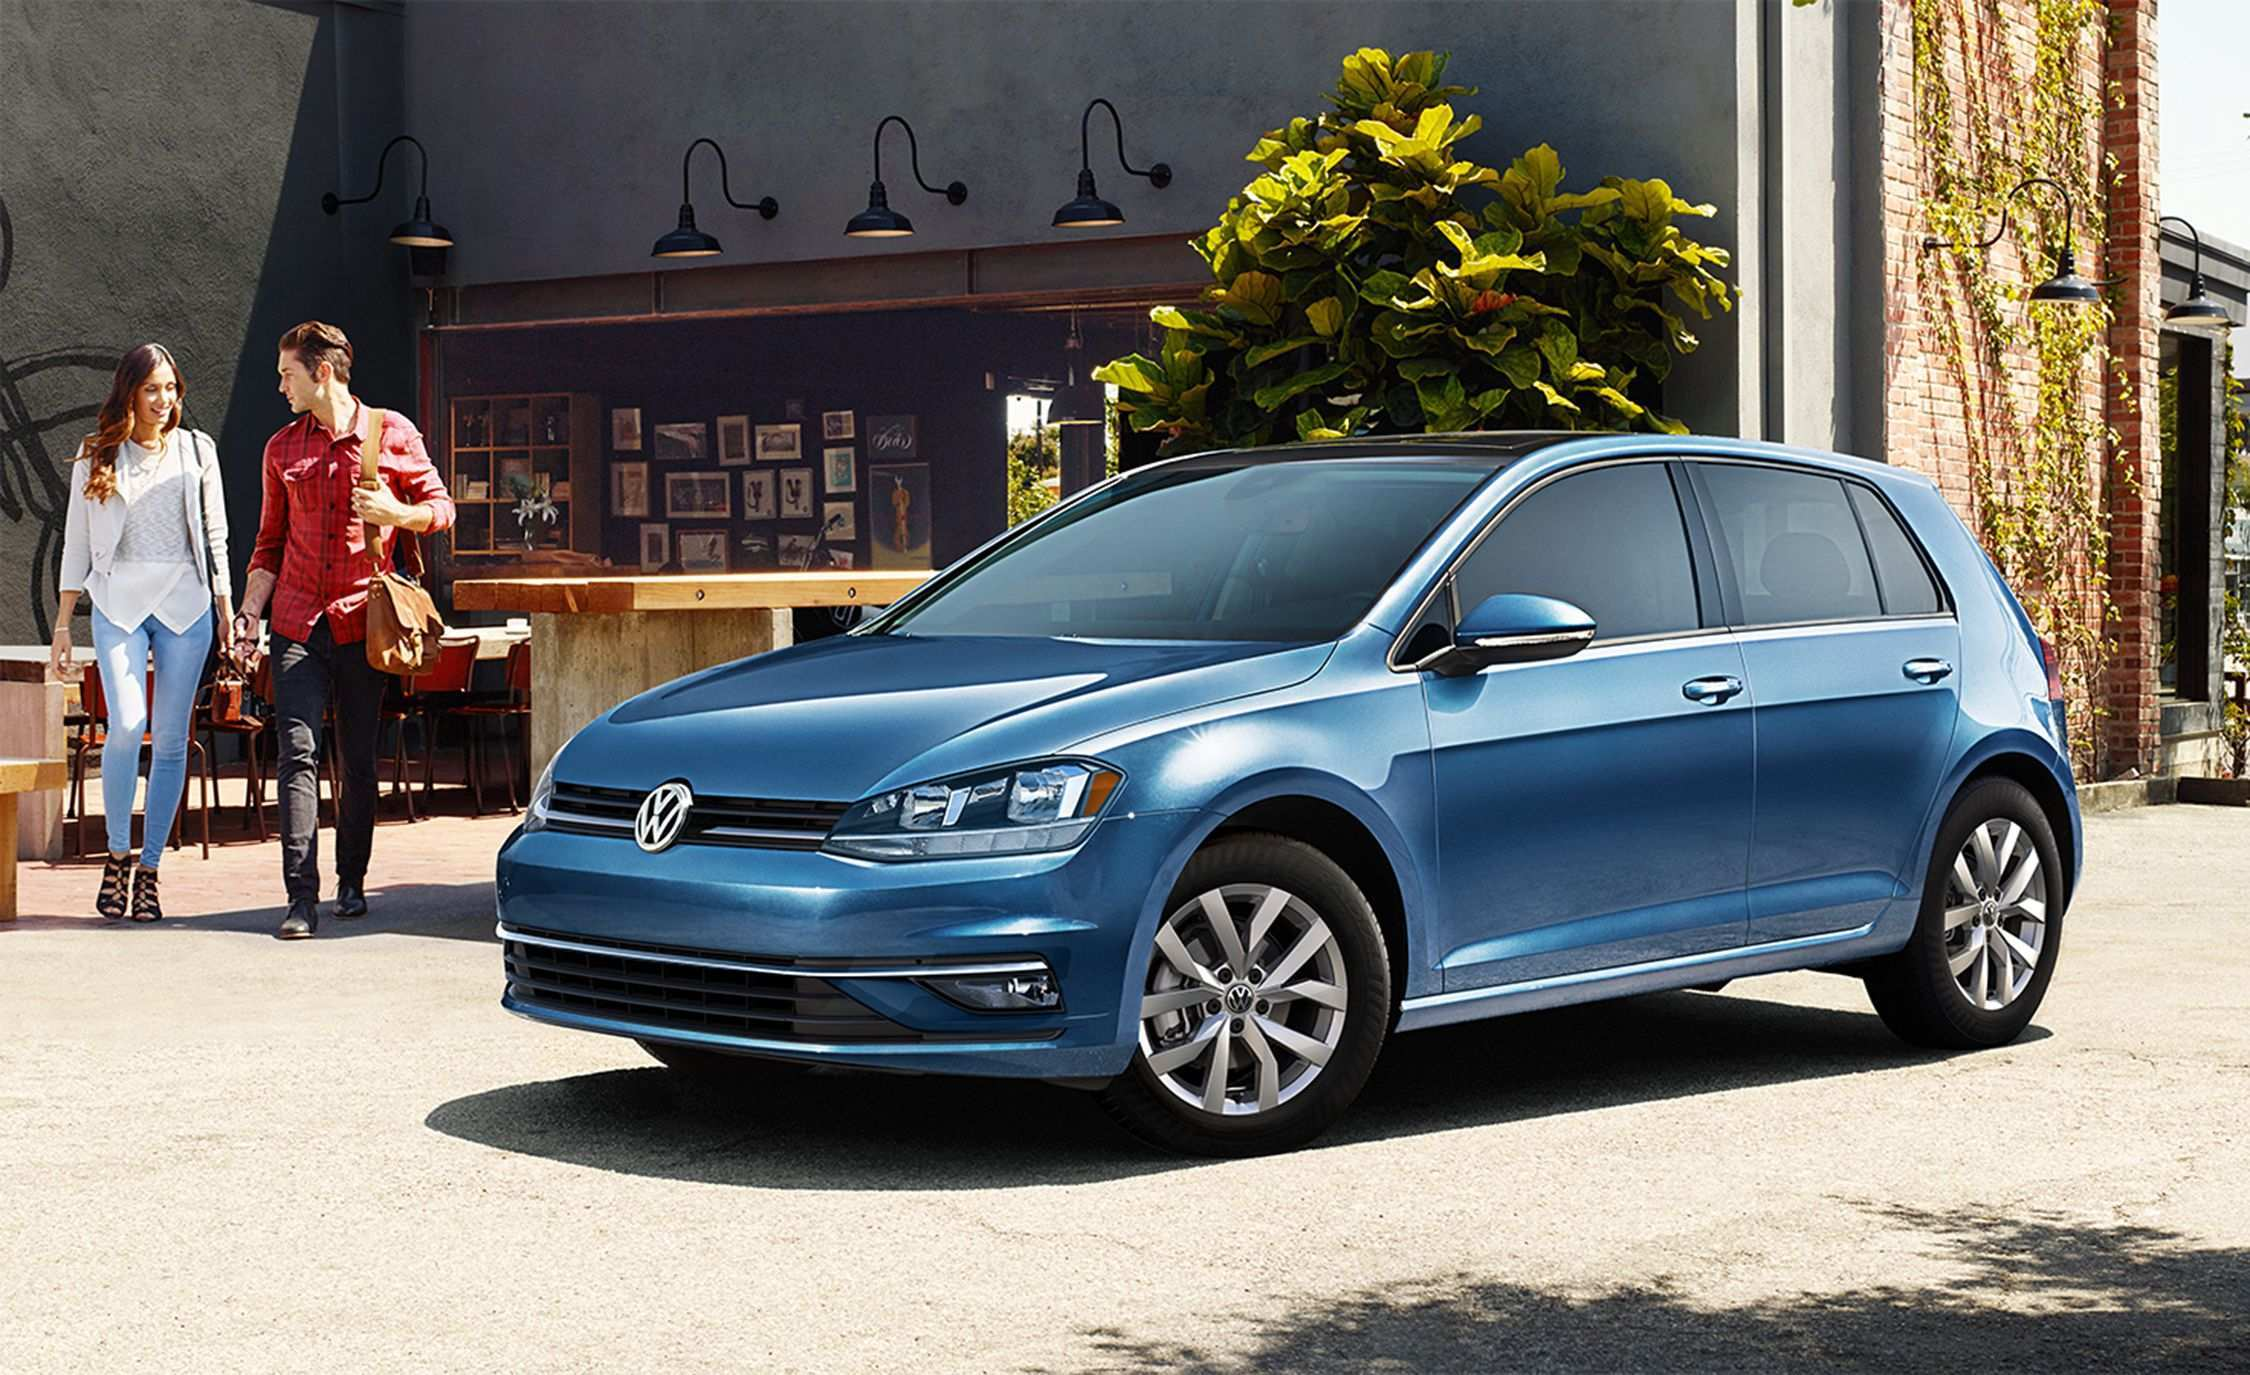 26 All New 2019 Volkswagen Wagon Interior with 2019 Volkswagen Wagon